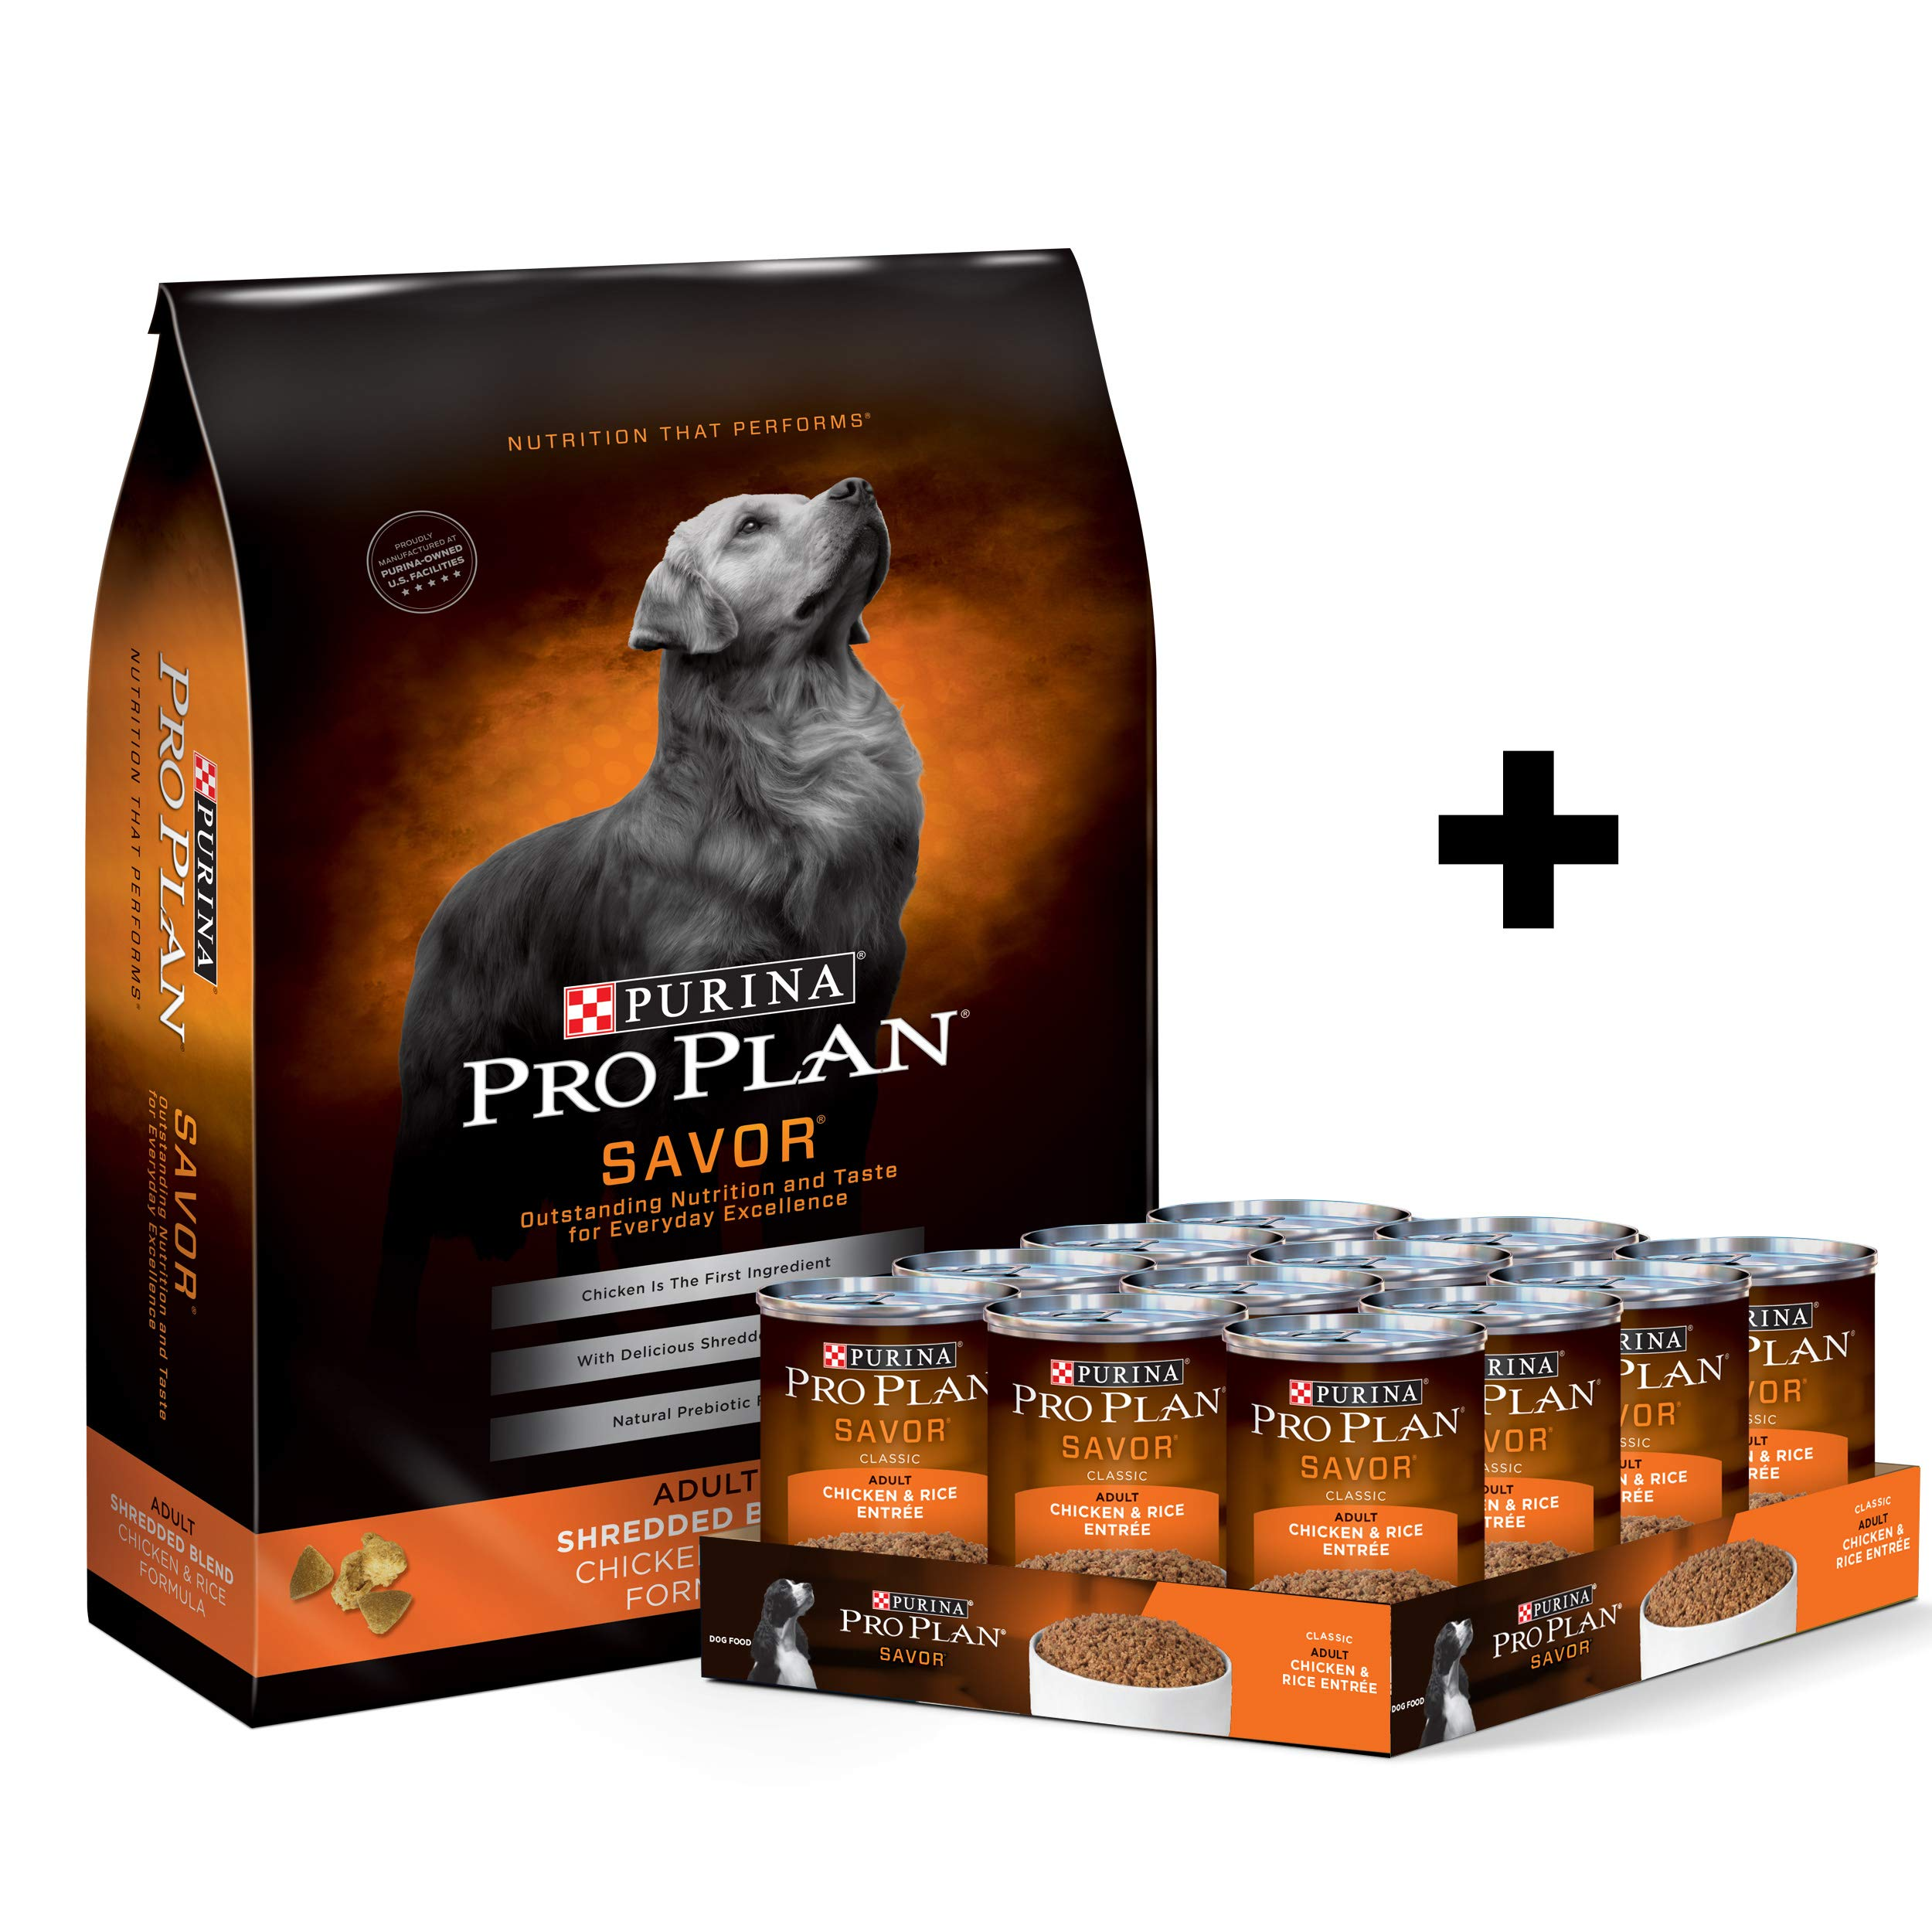 Purina Pro Plan Savor Chicken & Rice - Dry Dog Food & Canned Wet Dog Food Bundle Package by Purina Pro Plan